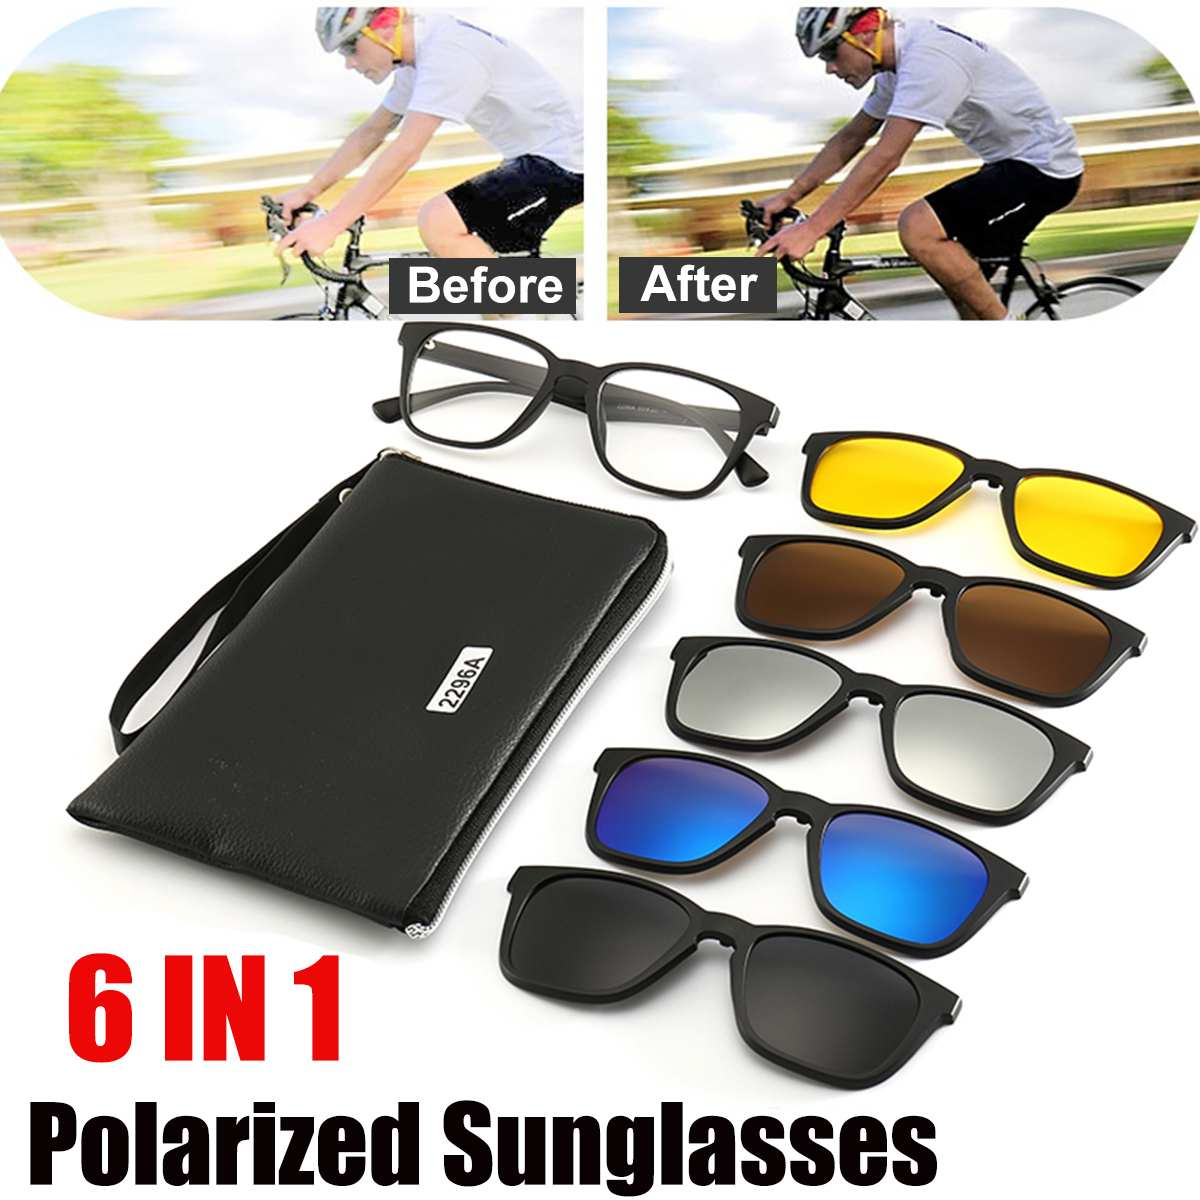 <font><b>6</b></font> <font><b>IN</b></font> <font><b>1</b></font> 2296A Night Vision Glasses Polarized <font><b>Sunglasses</b></font> Retro Frame Eyewear Night Vision Driving Optical Glasses With Carry Bag image